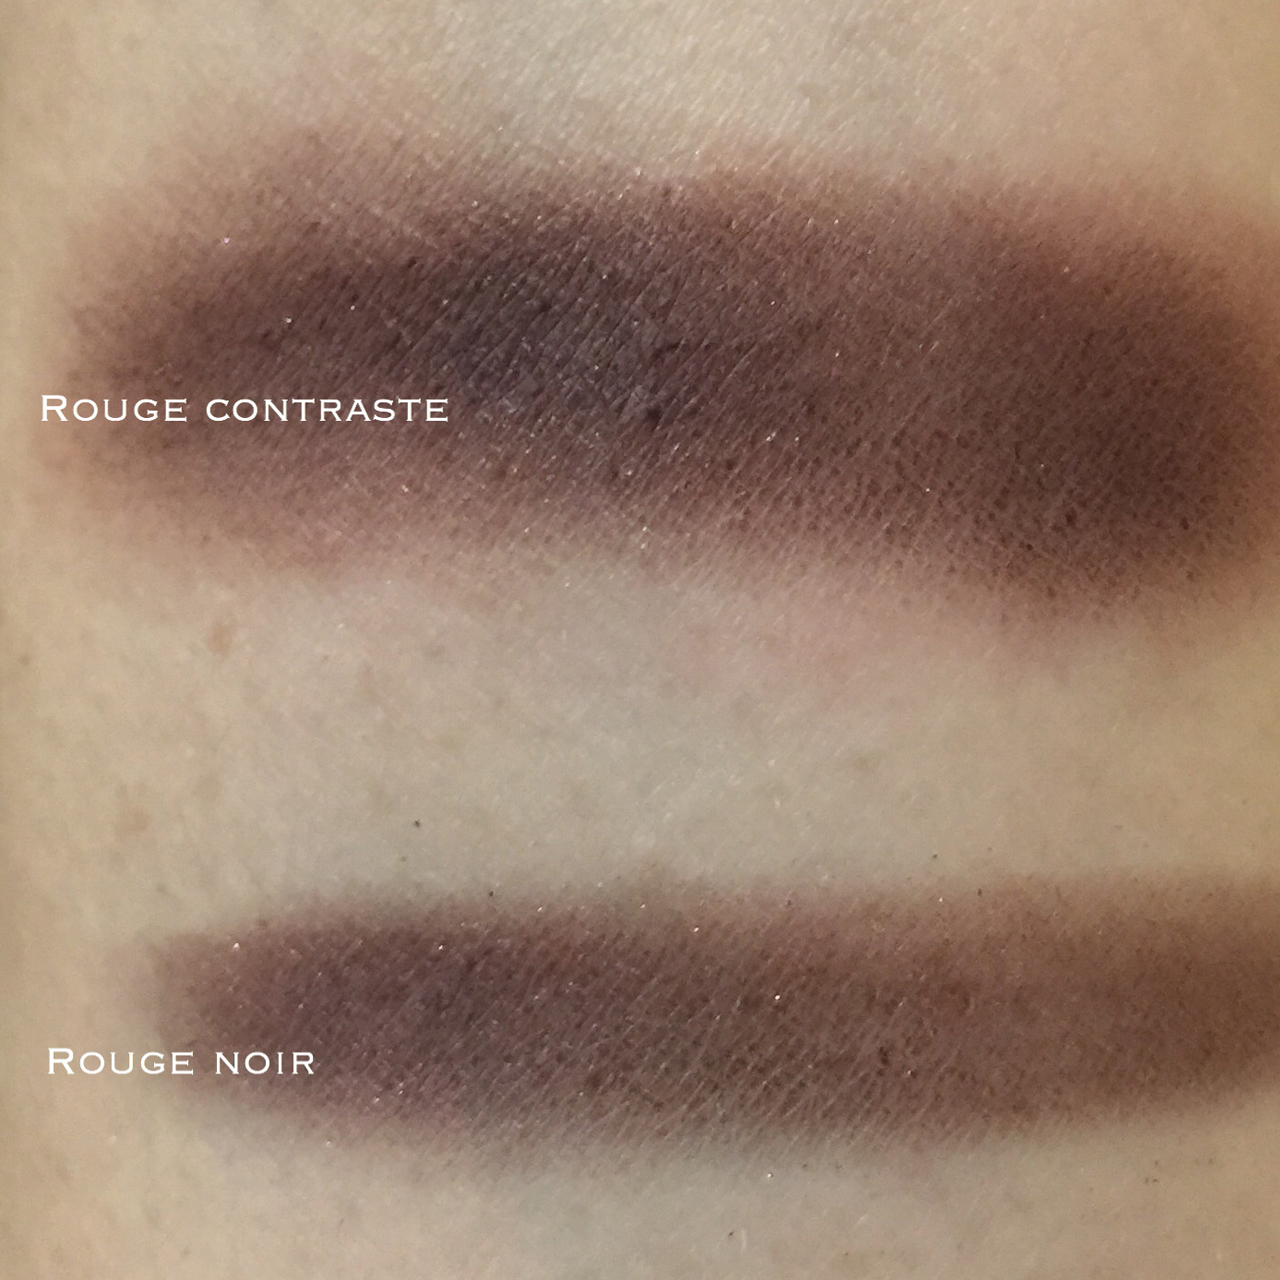 Chanel Illusion d'ombre 132 Rouge Contraste for Fall 2016 swatch comparison with Rouge Noir